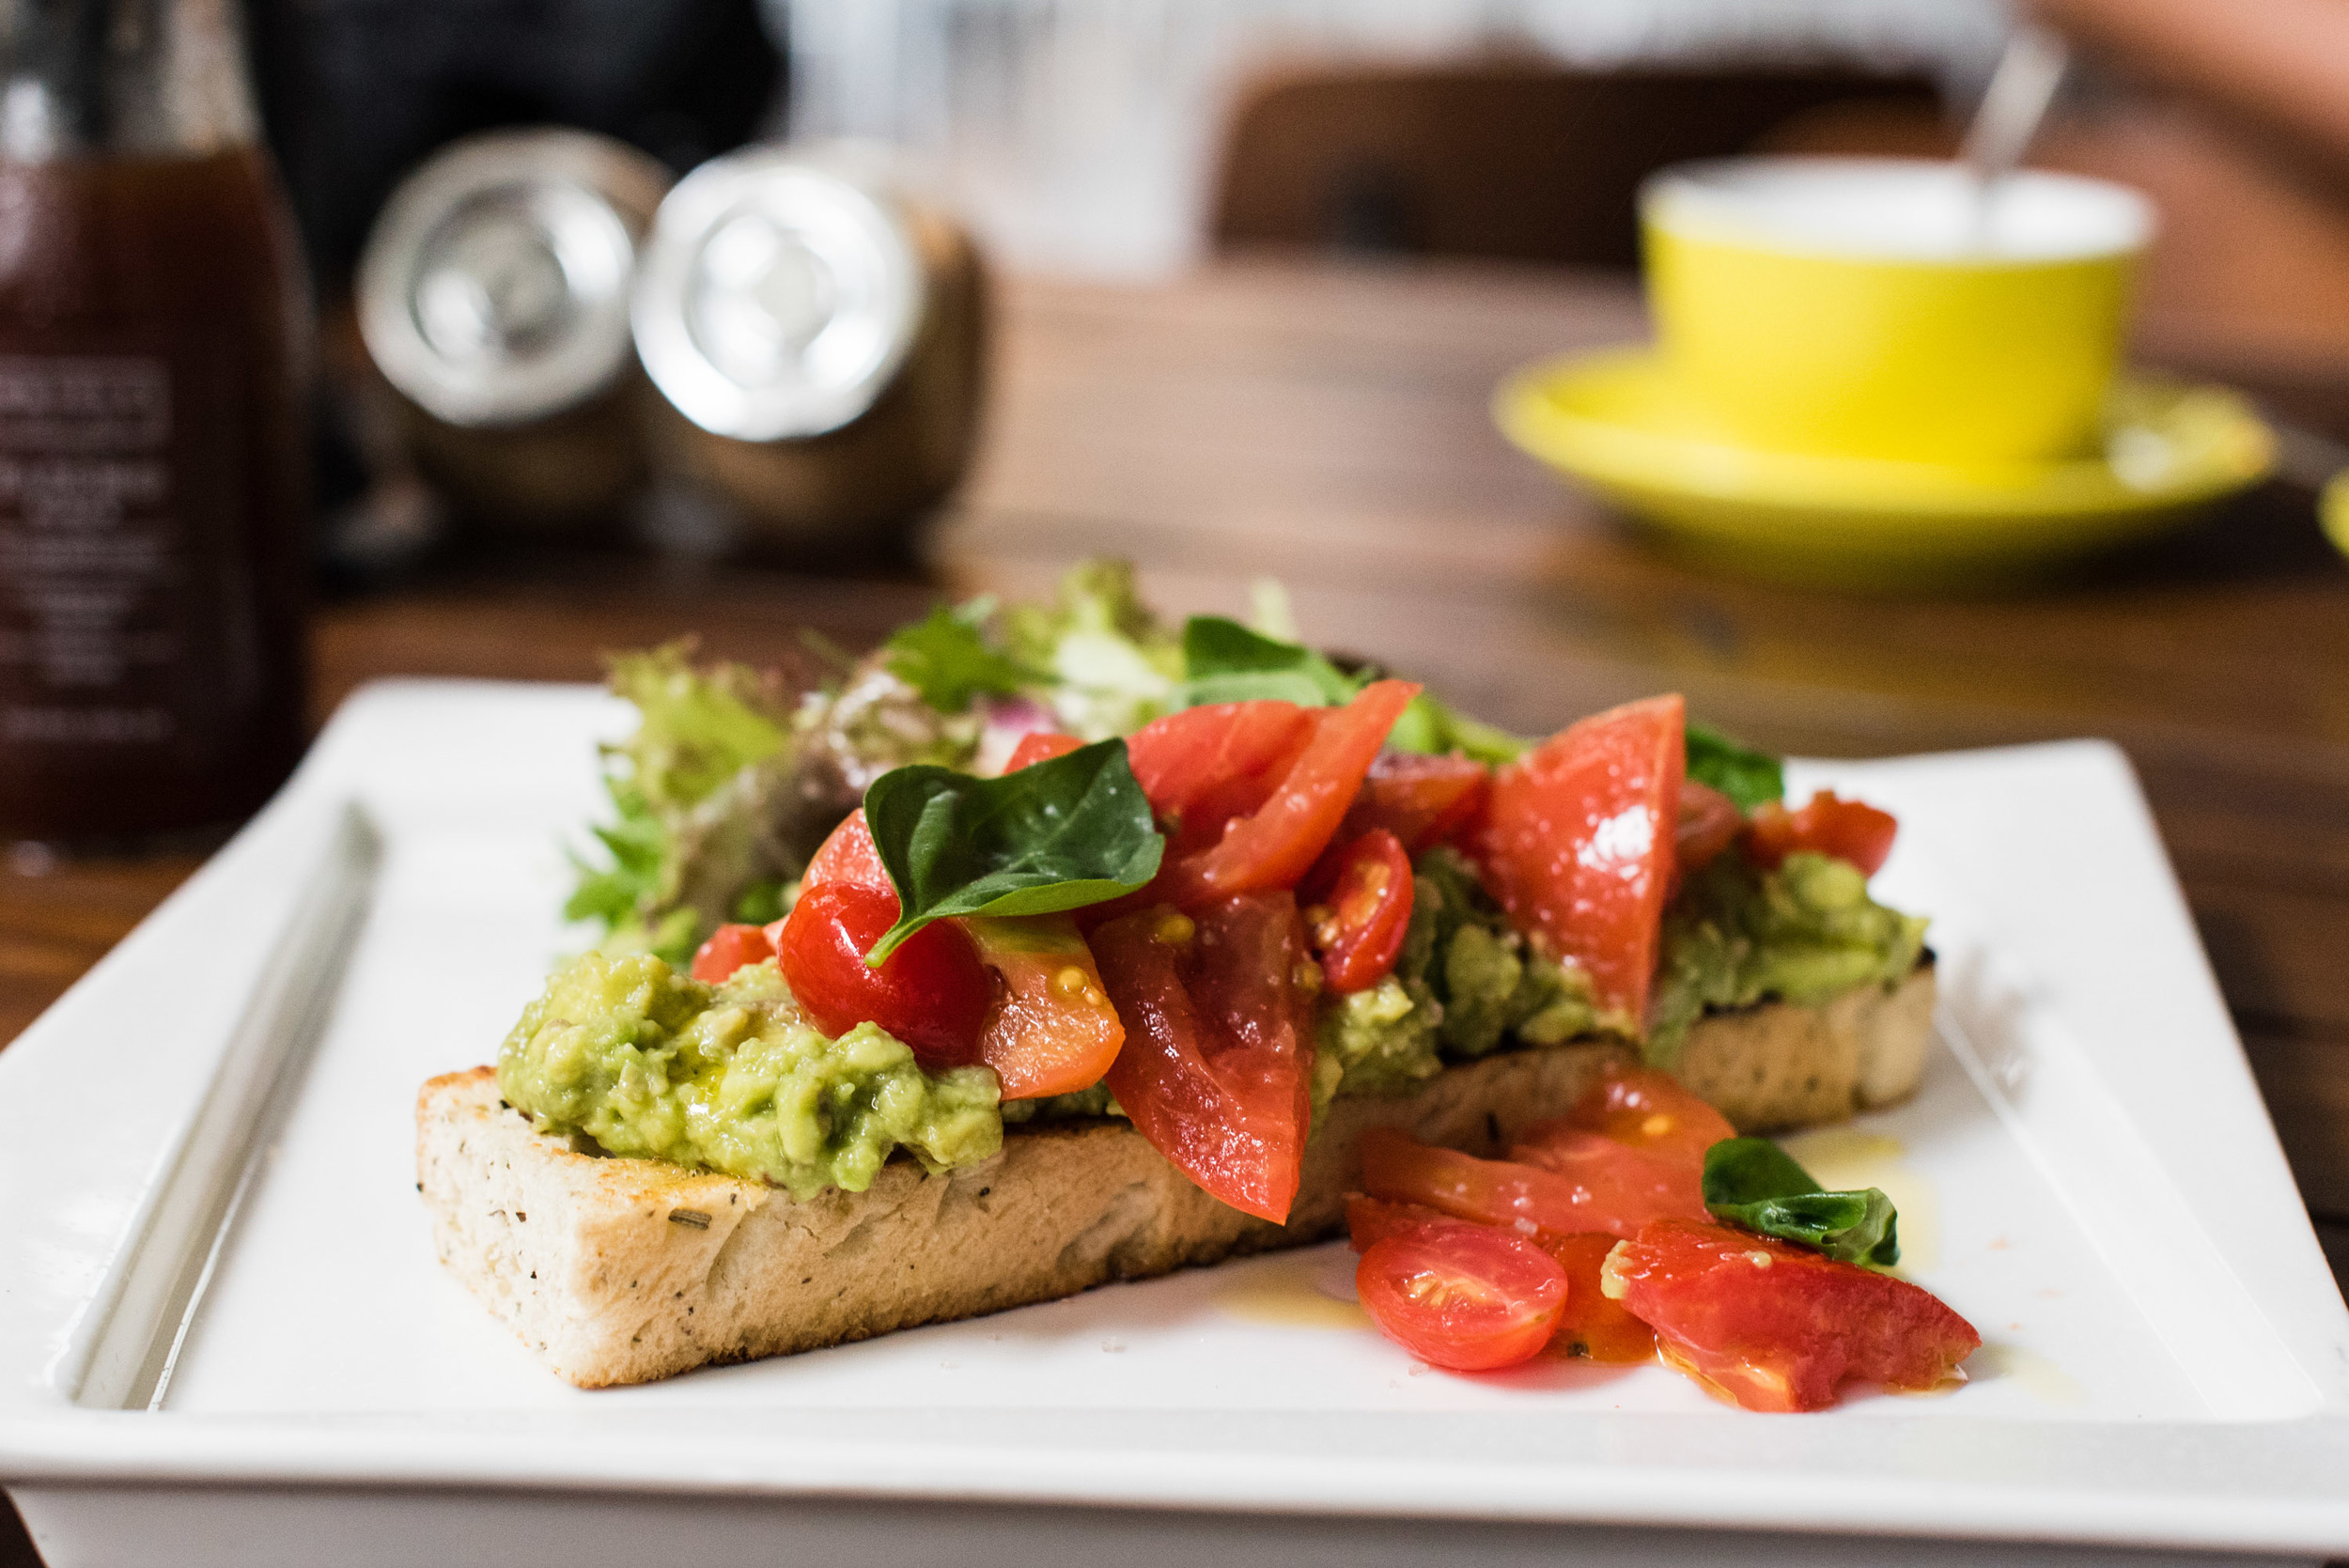 Delicious Breakfast and Brunch food at Oriole Coffee + Bar